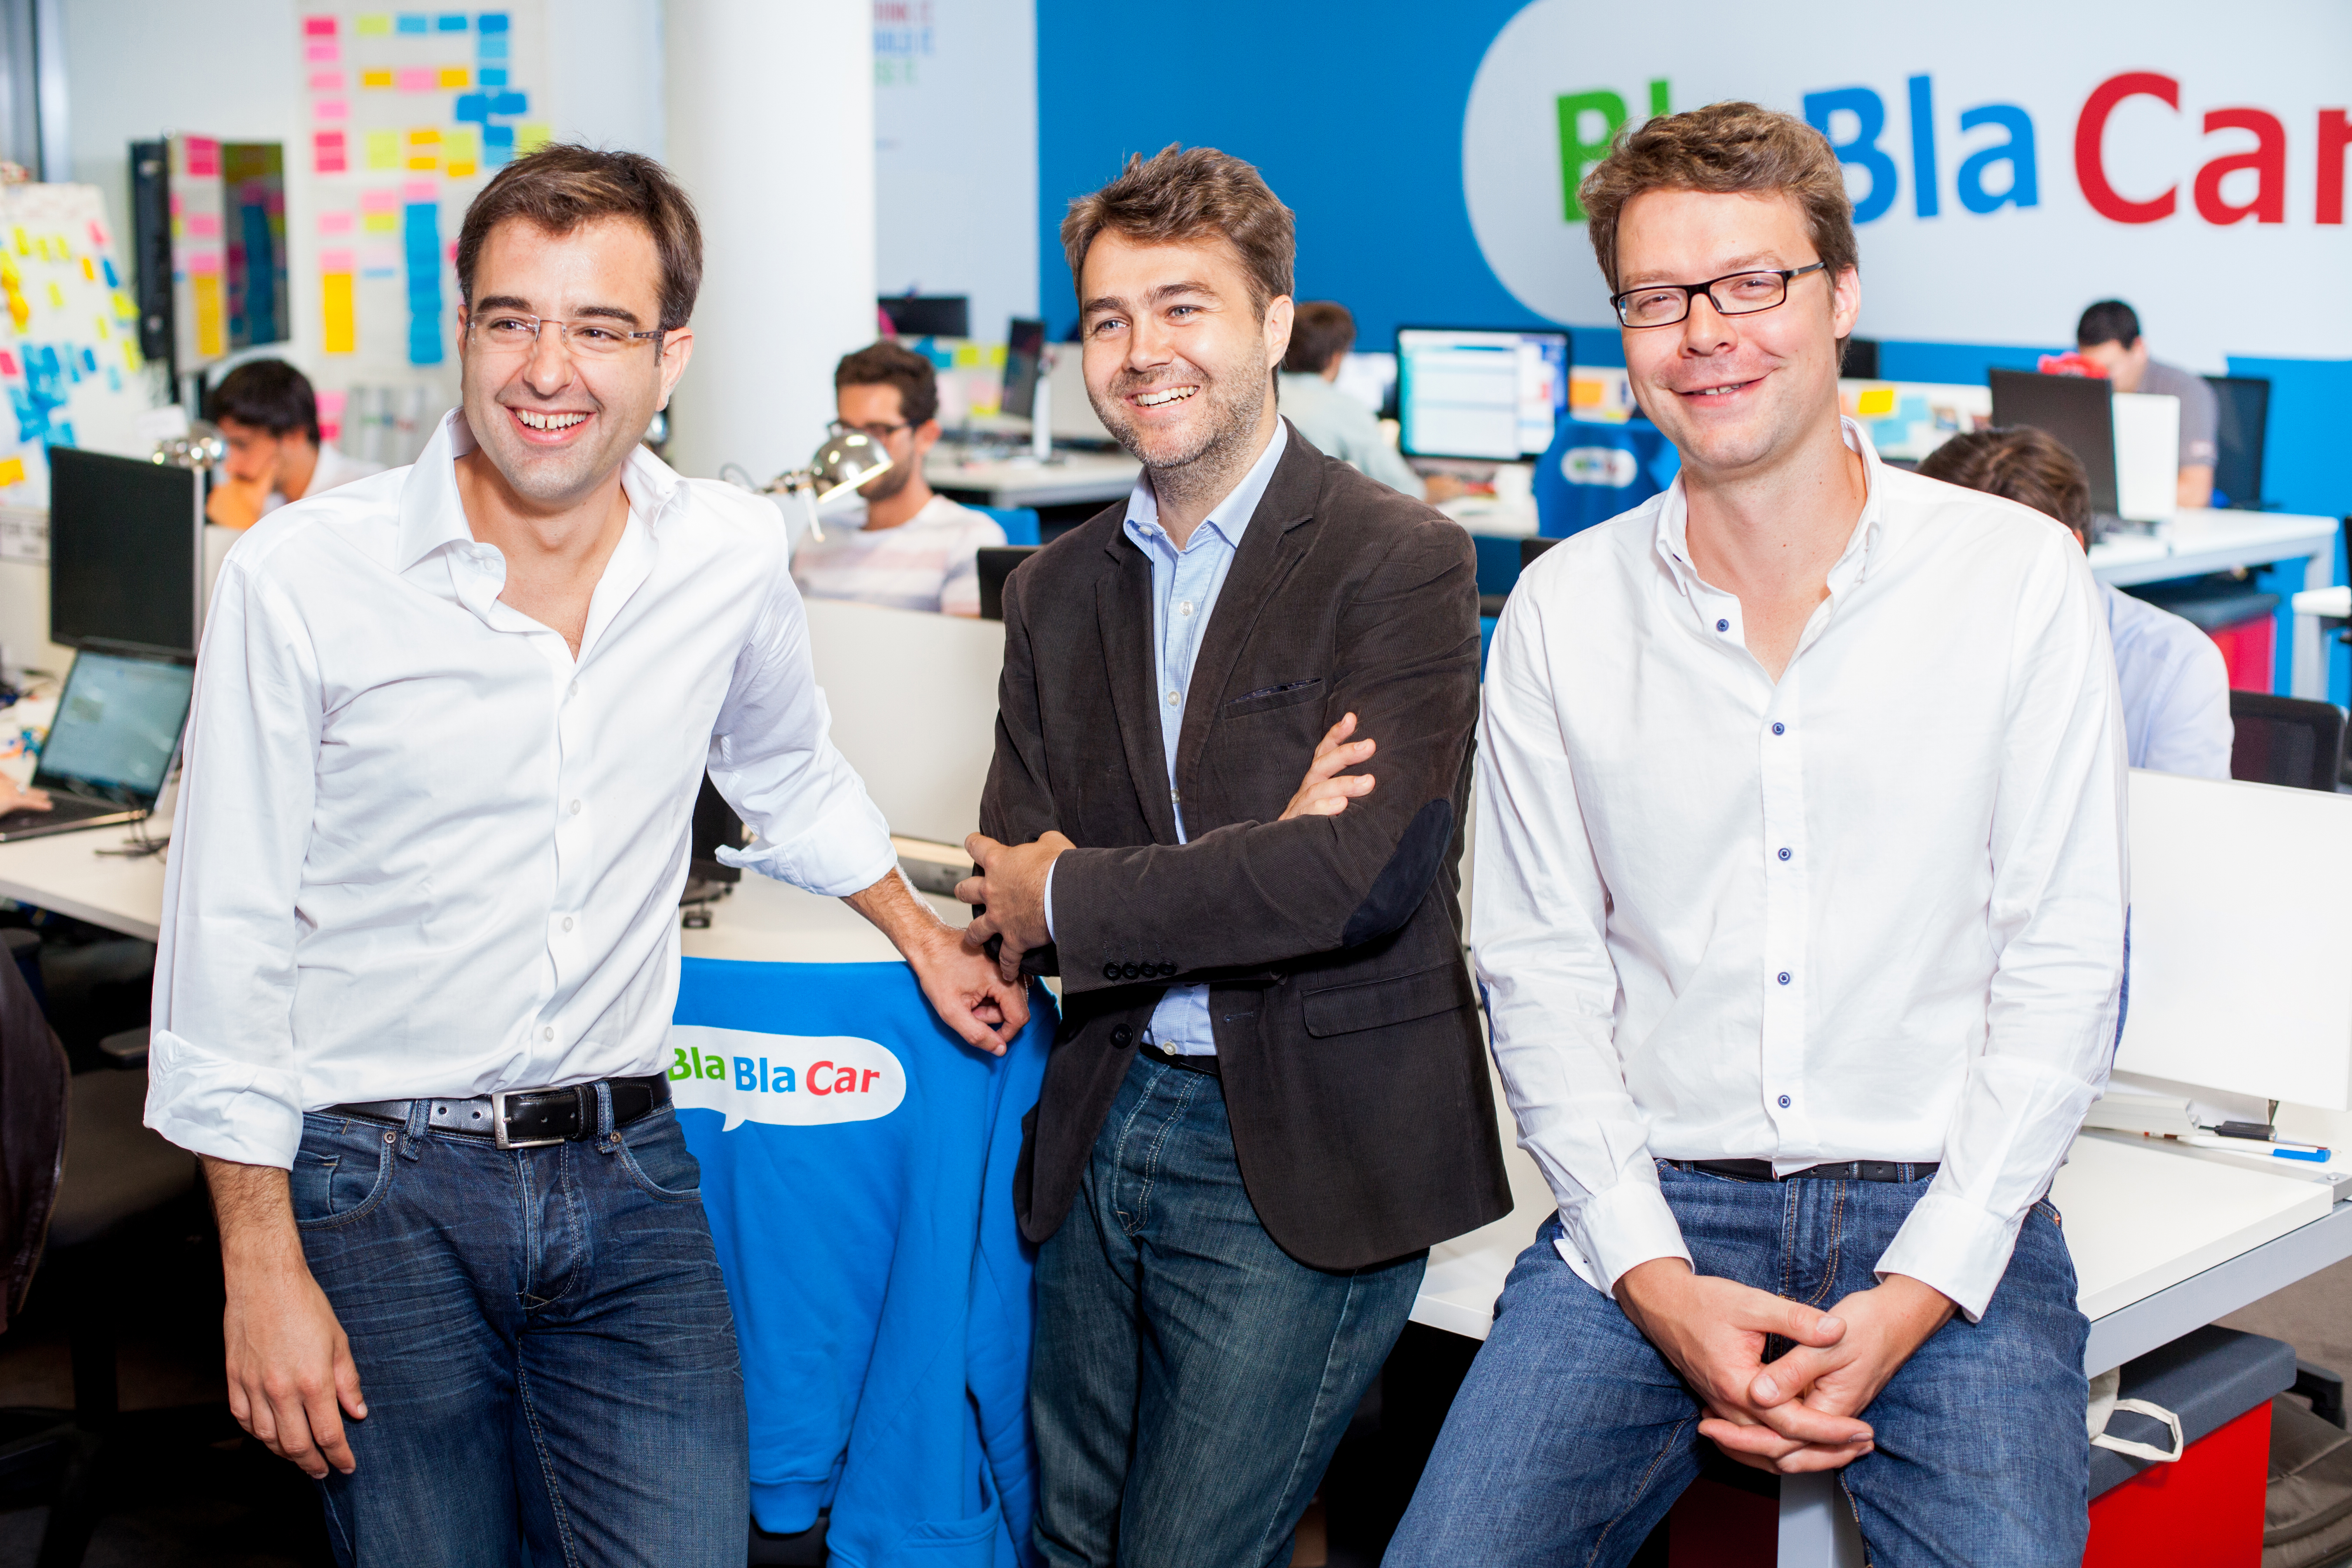 BlaBlaCar co-founders Nicolas Brusson, Frédéric Mazzella, and Francis Nappez are the latest to join Fortune's Unicorn List with a $1.6 billion valuation.